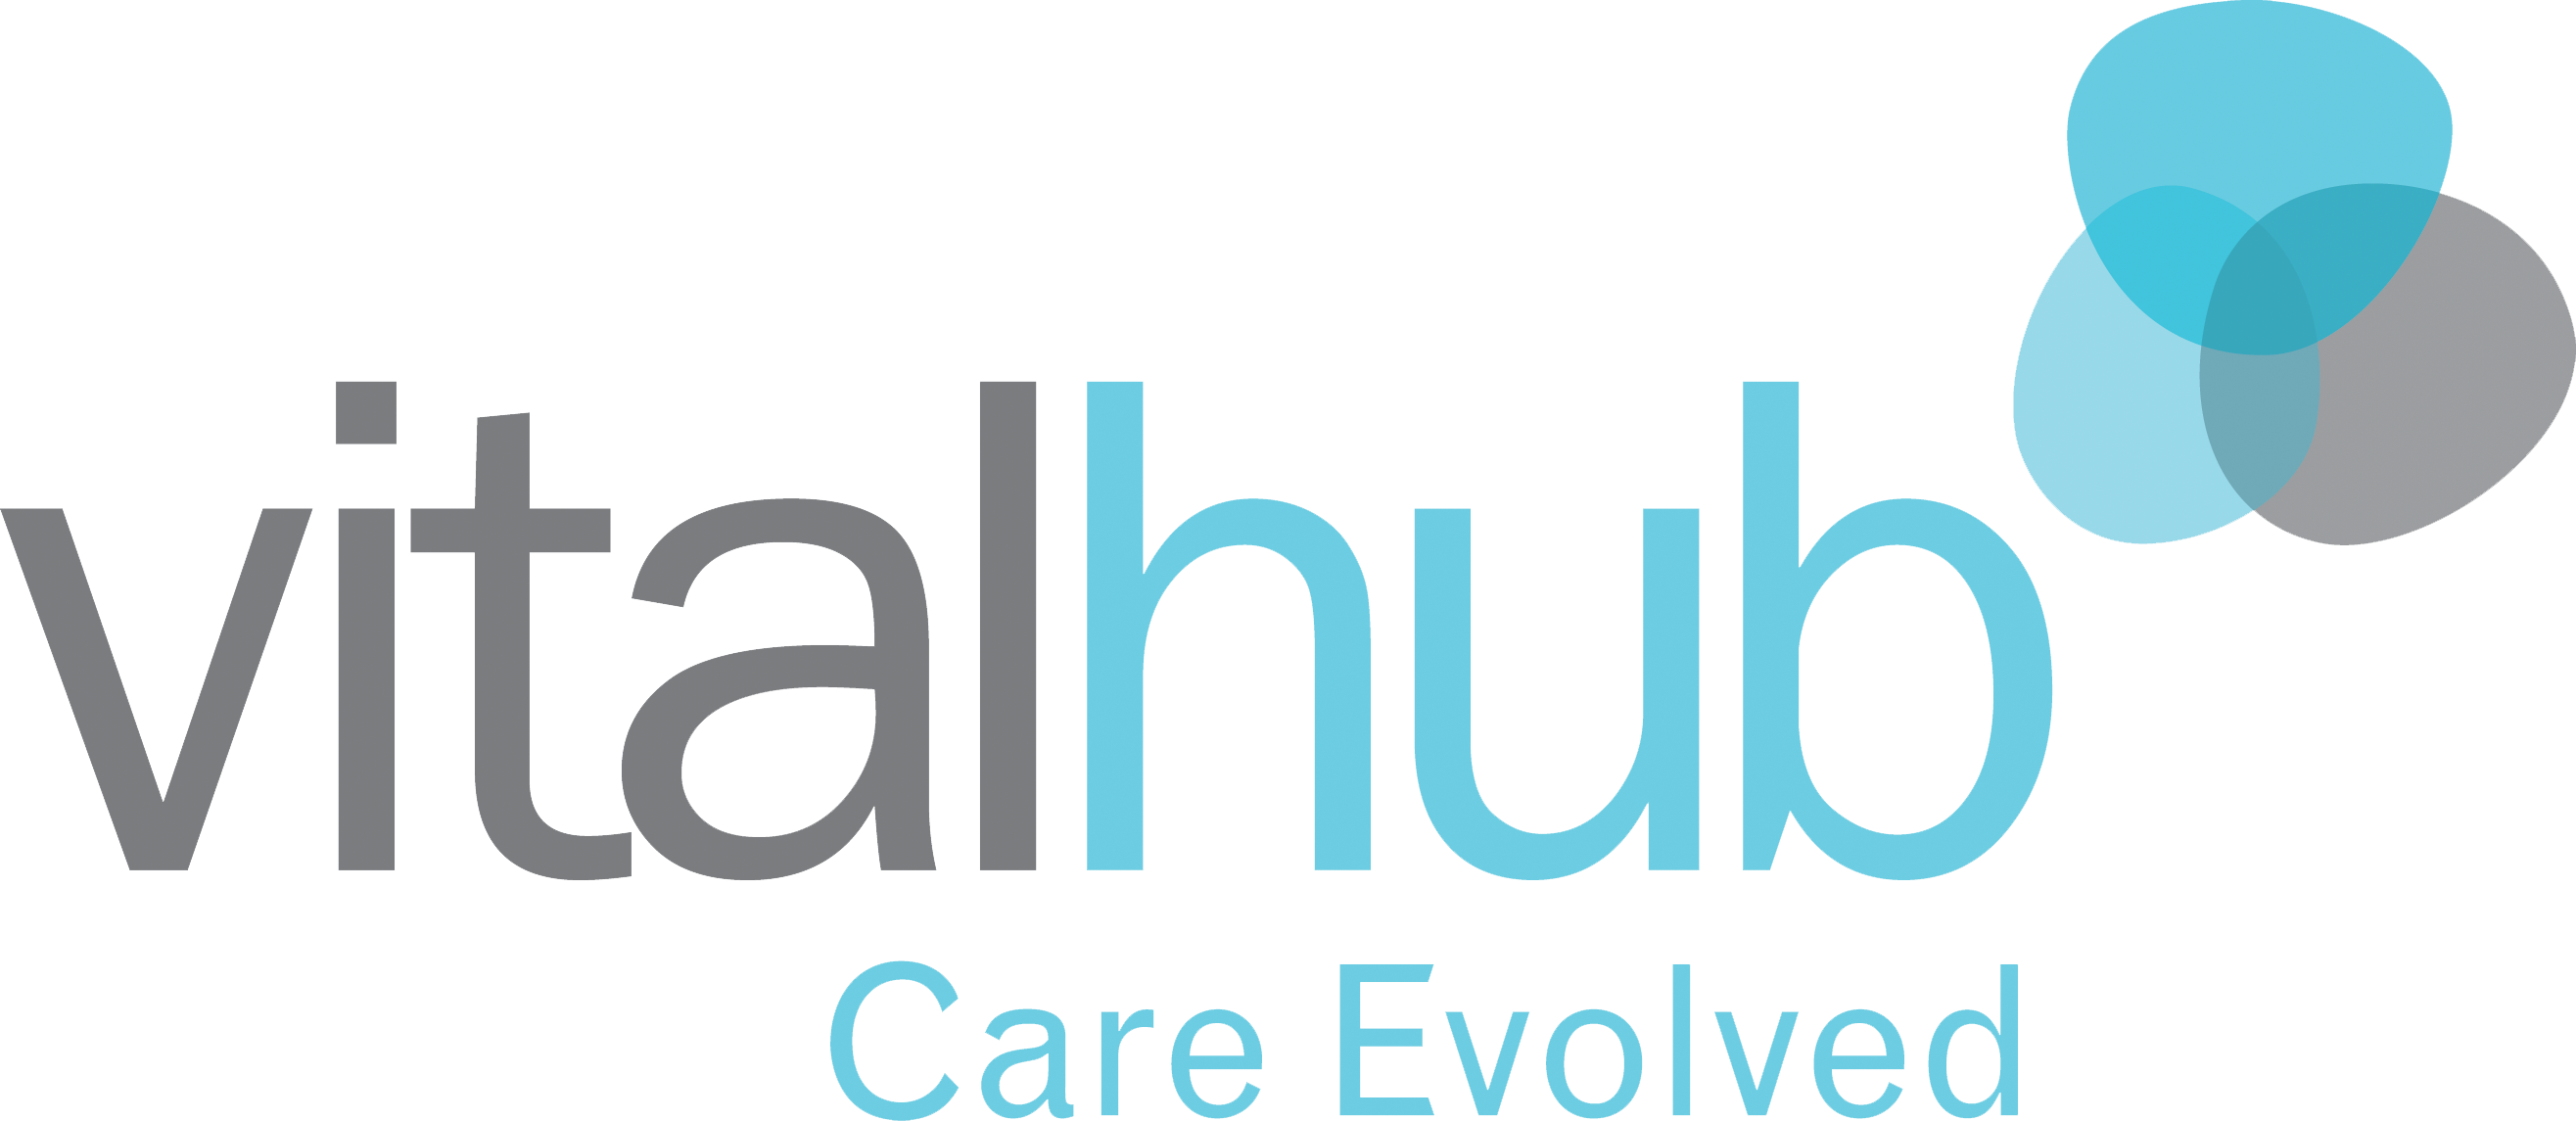 VitalHub Announces Expansion Licensing Deal with Rotherham NHS Foundation Trust